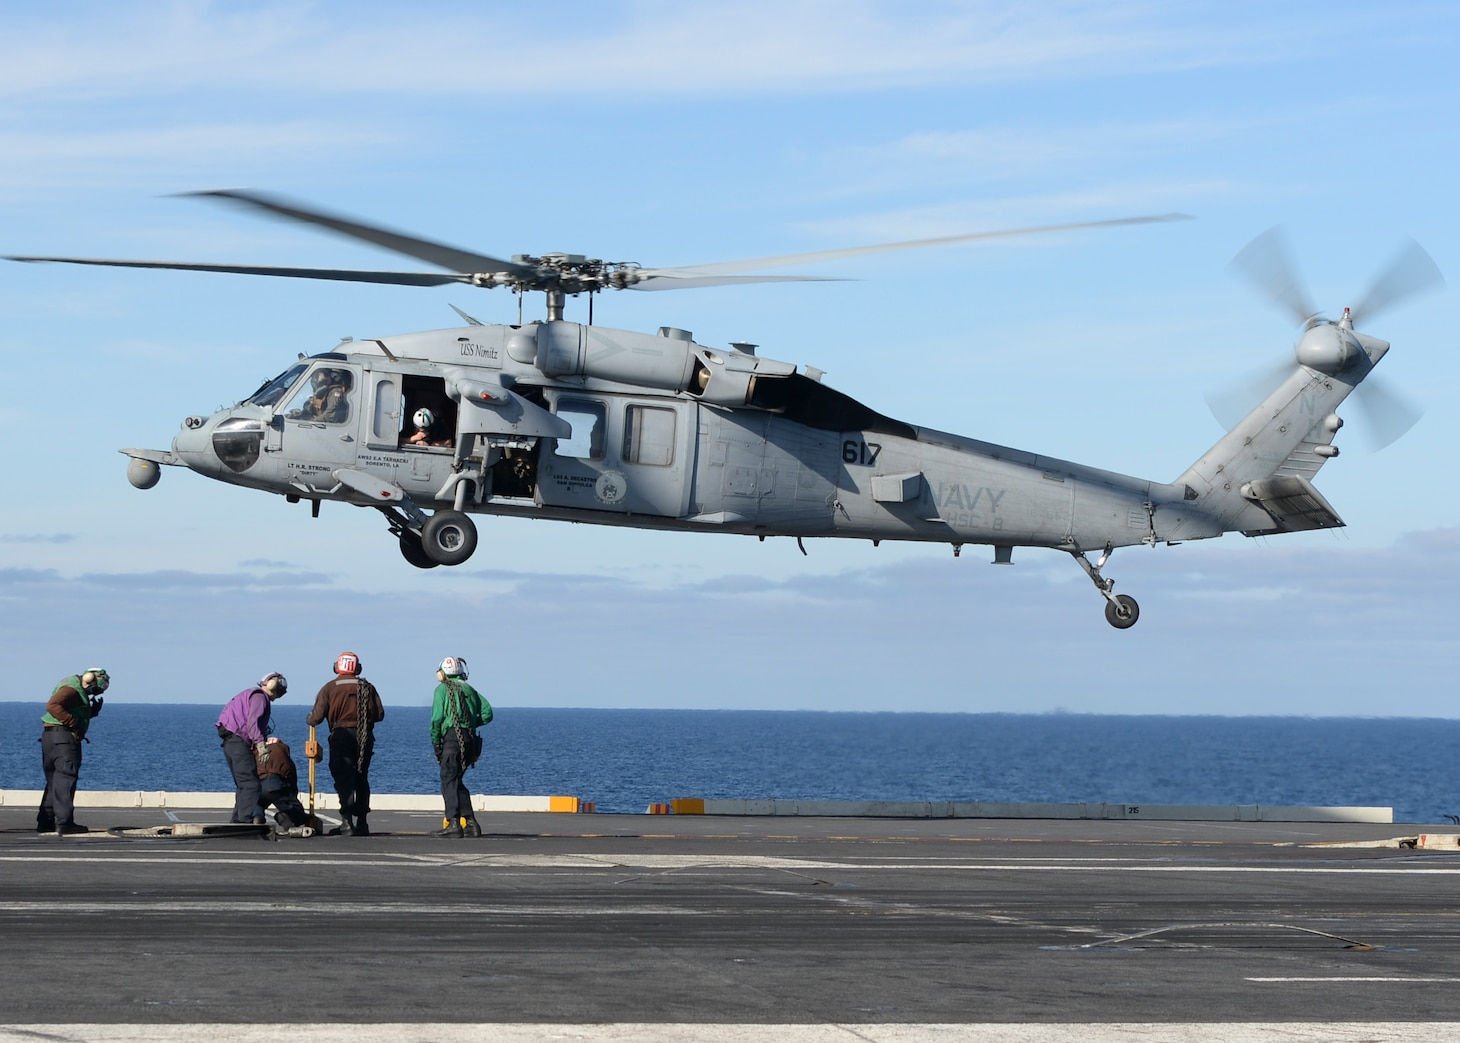 """An MH-60ss Sea Hawk helicopter, from the """"EightBallers"""" of Helicopter Sea Combat Squadron (HSC) 8, prepares to land aboard USS Nimitz (CVN 68)."""